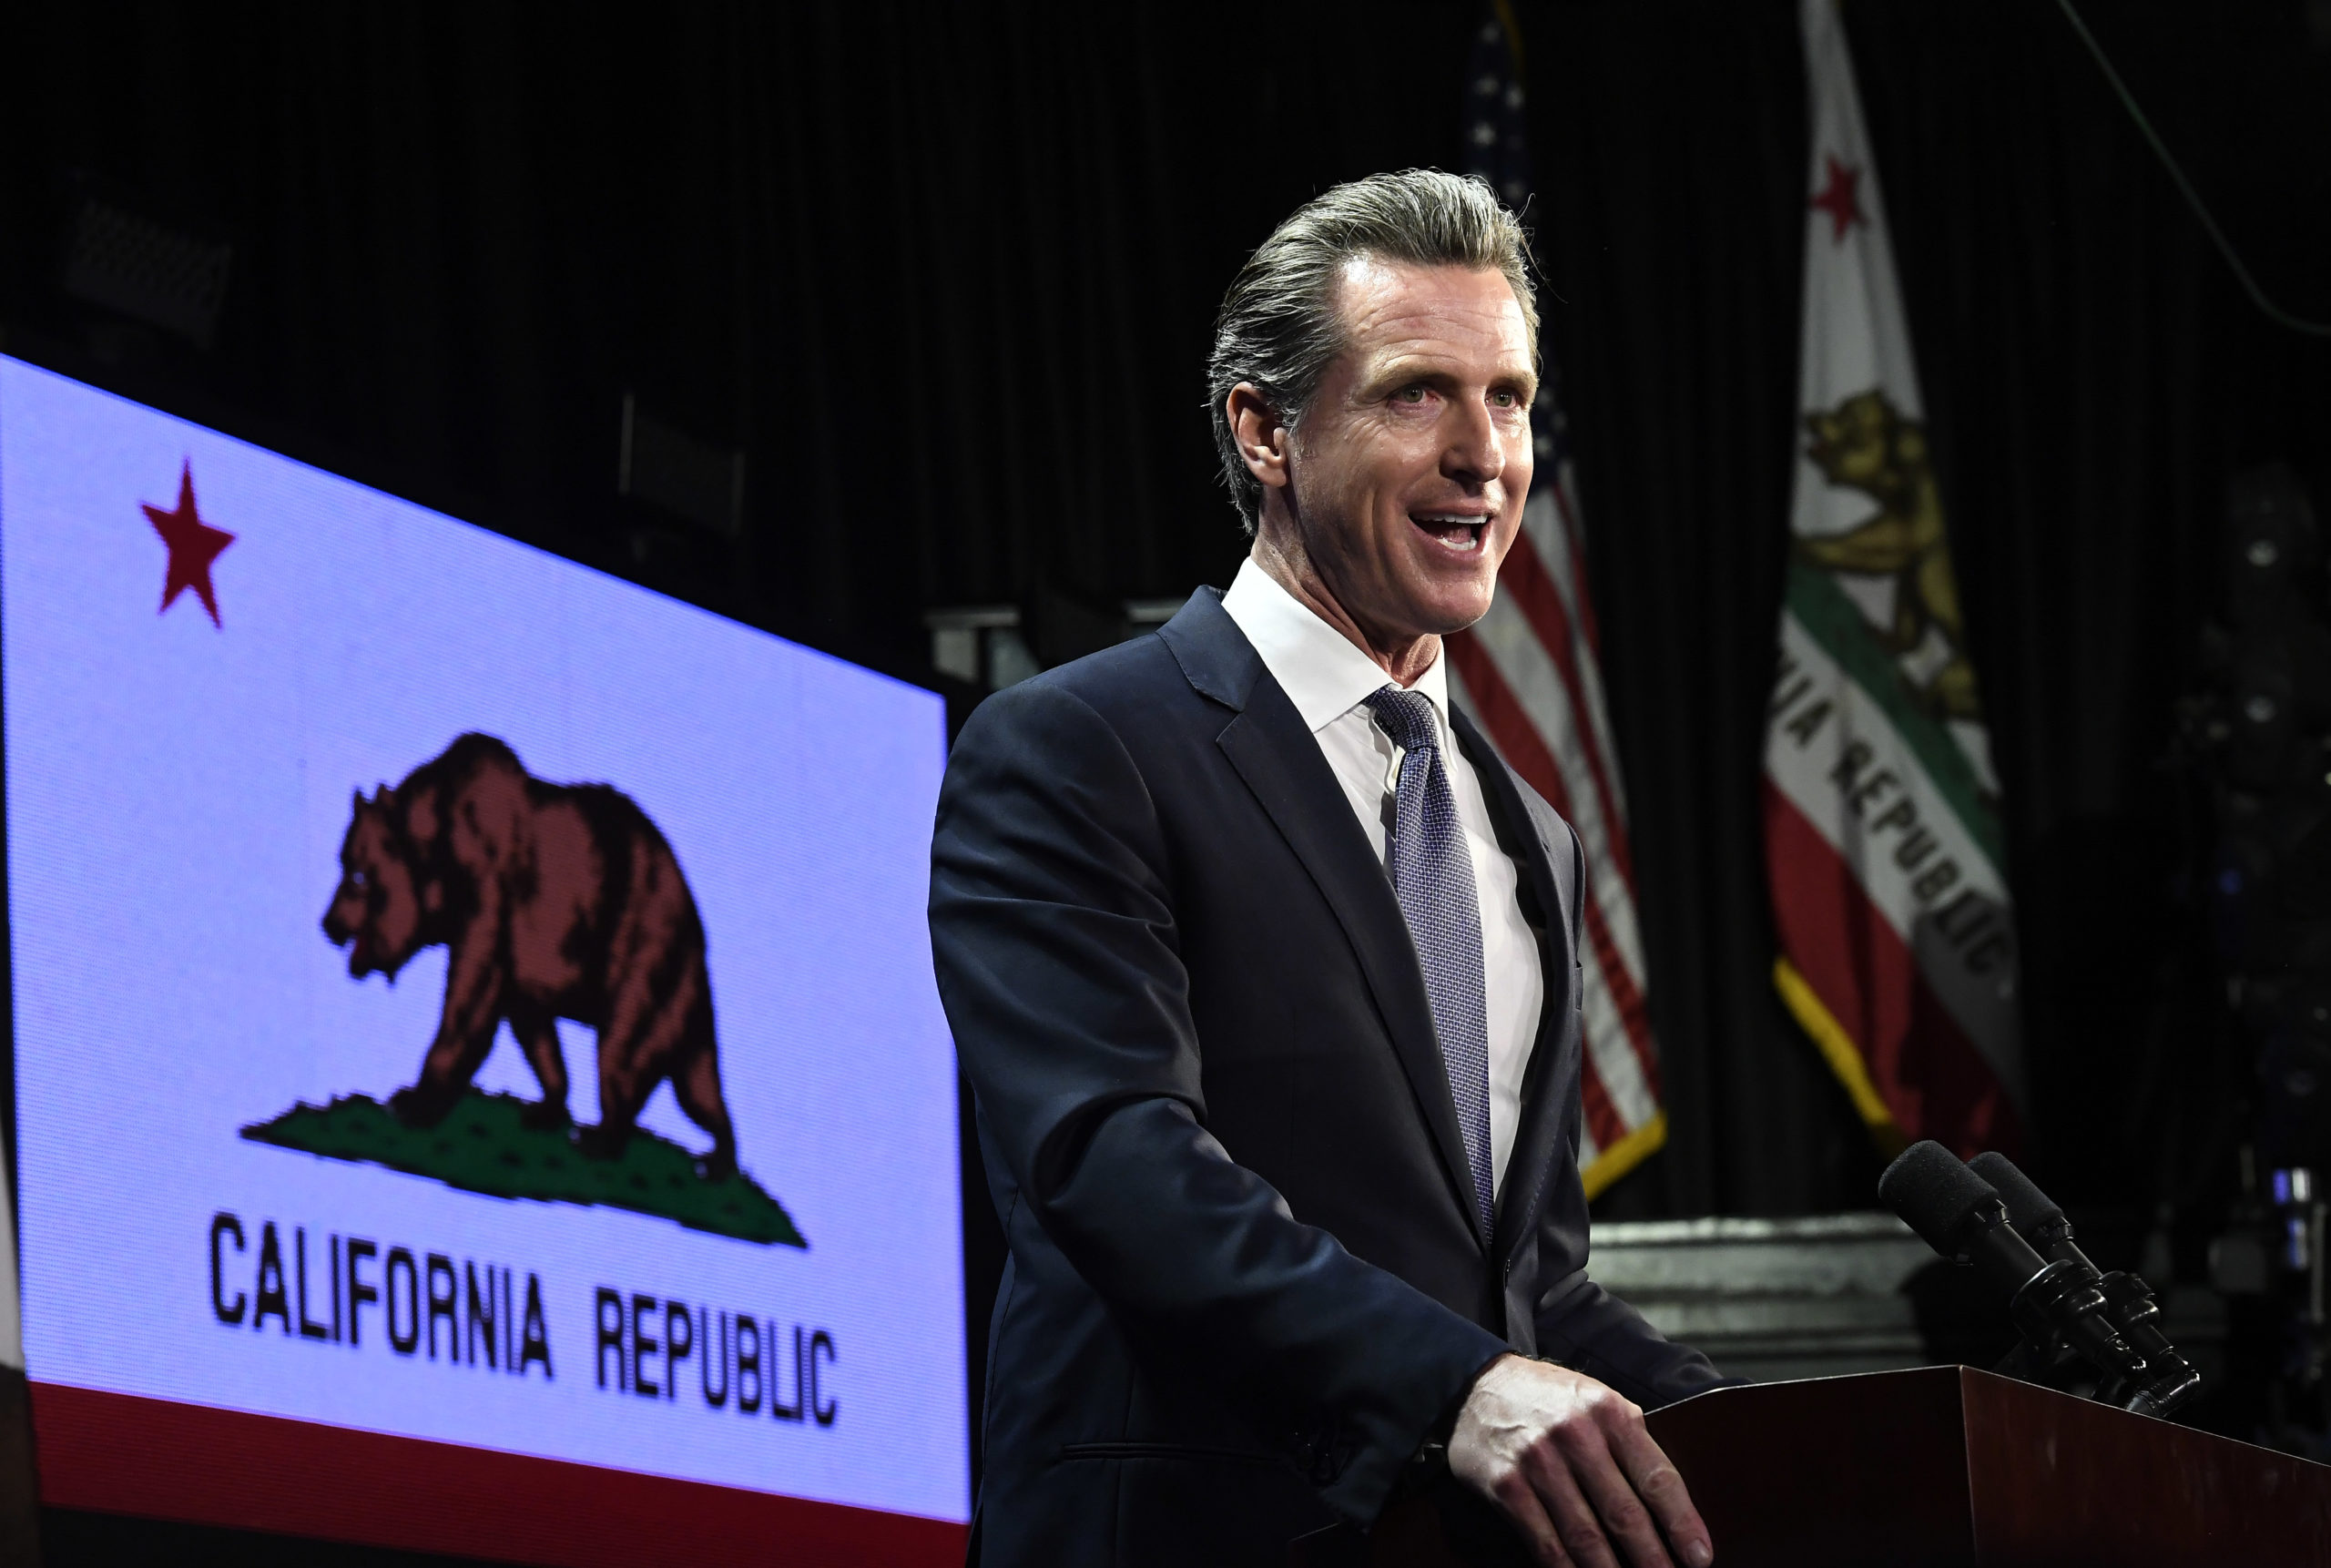 Democratic gubernatorial candidate Gavin Newsom speaks in 2018 in Los Angeles, California. (Kevork Djansezian/Getty Images)